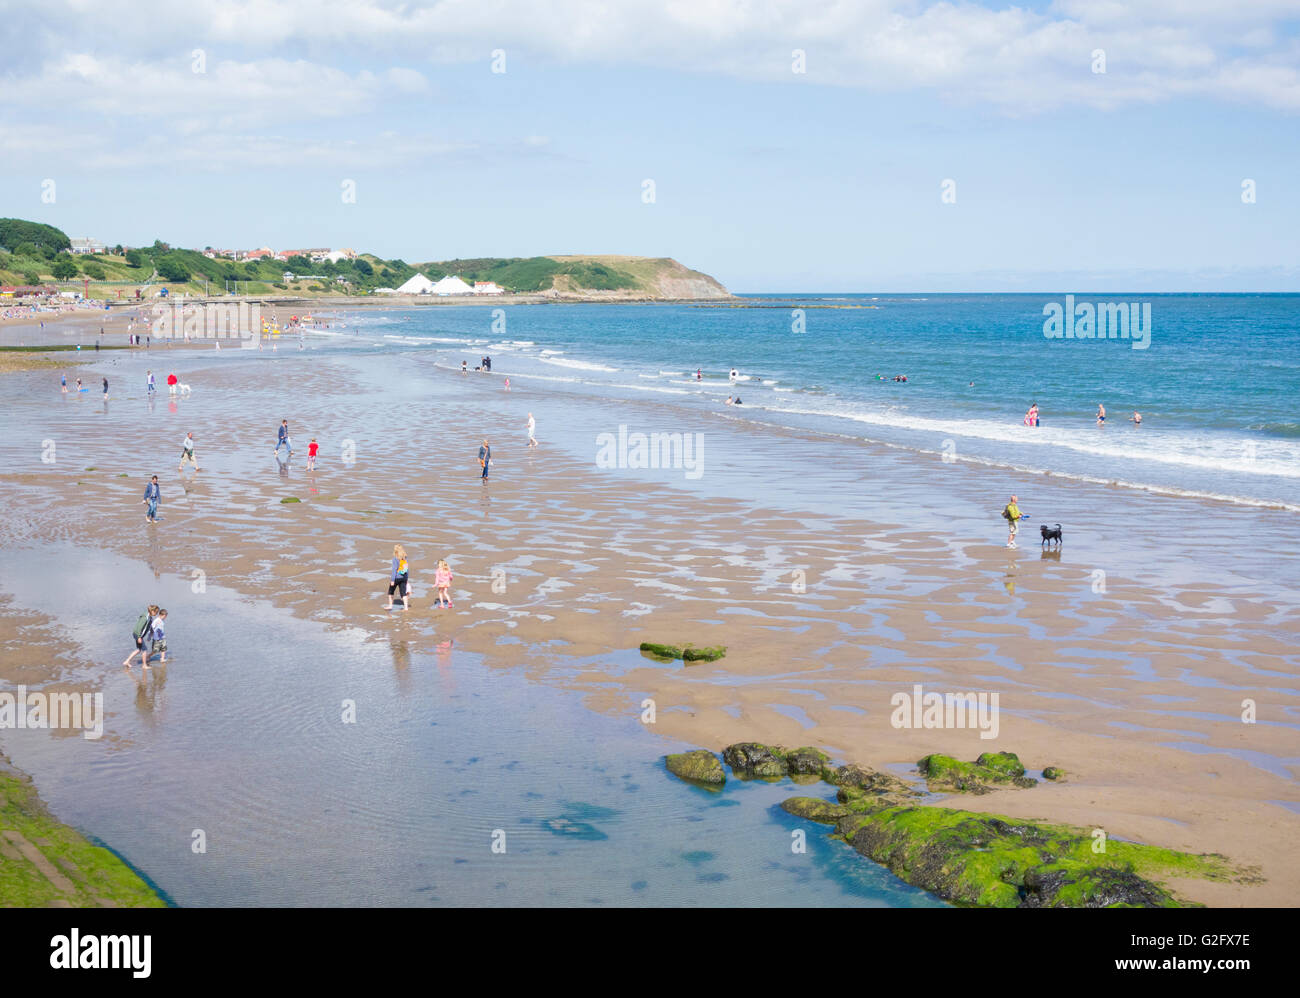 North Bay beach, Scarborough, North Yorkshire, England, United Kingdom - Stock Image